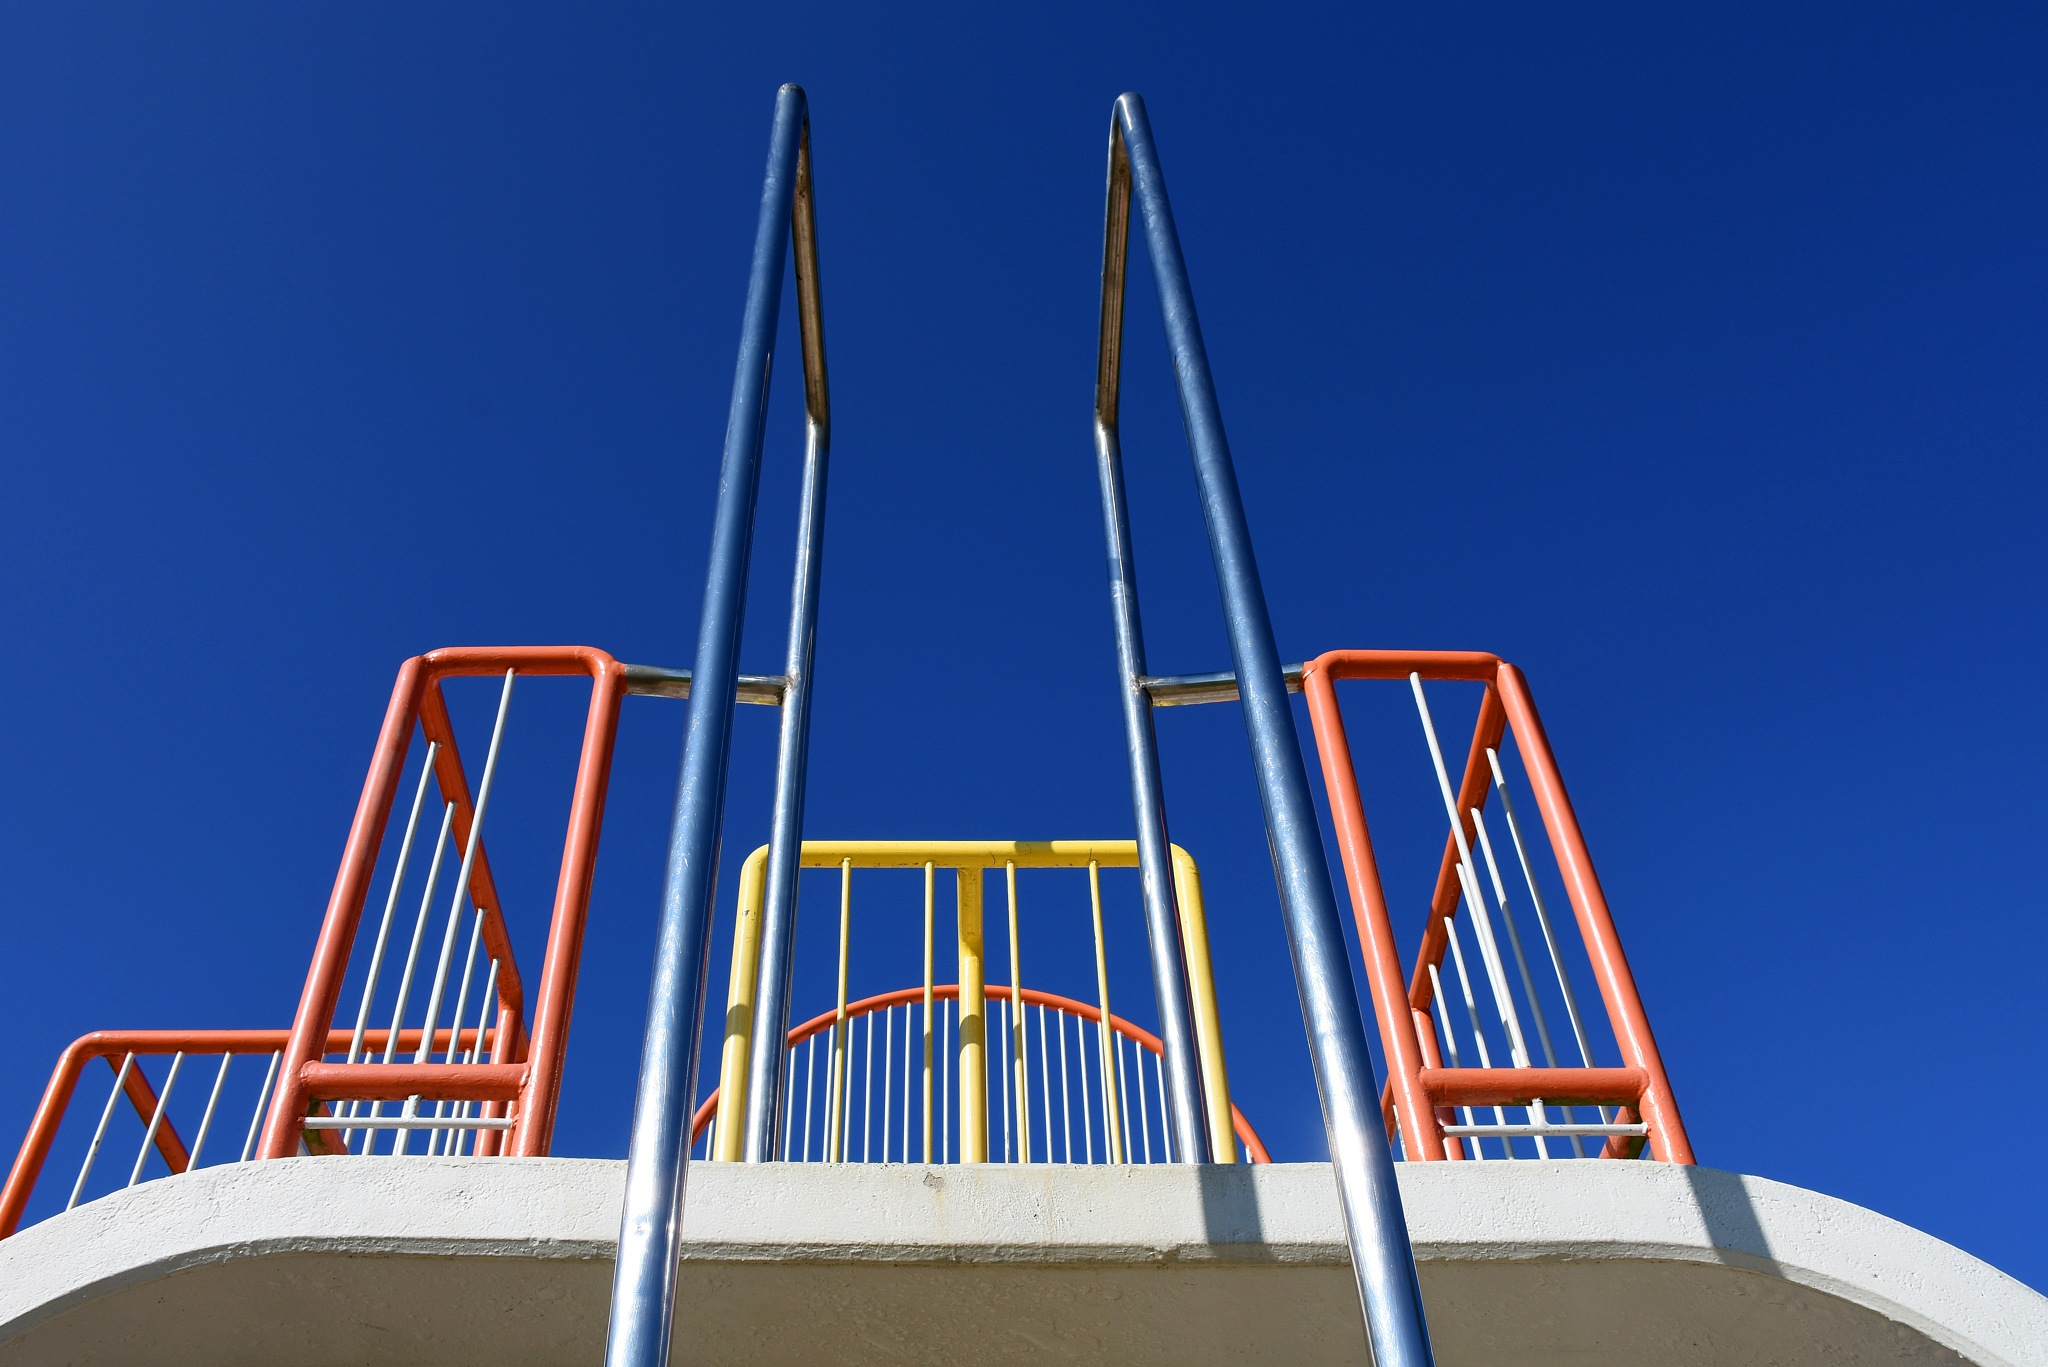 Climbing frame symmetry by liwesta